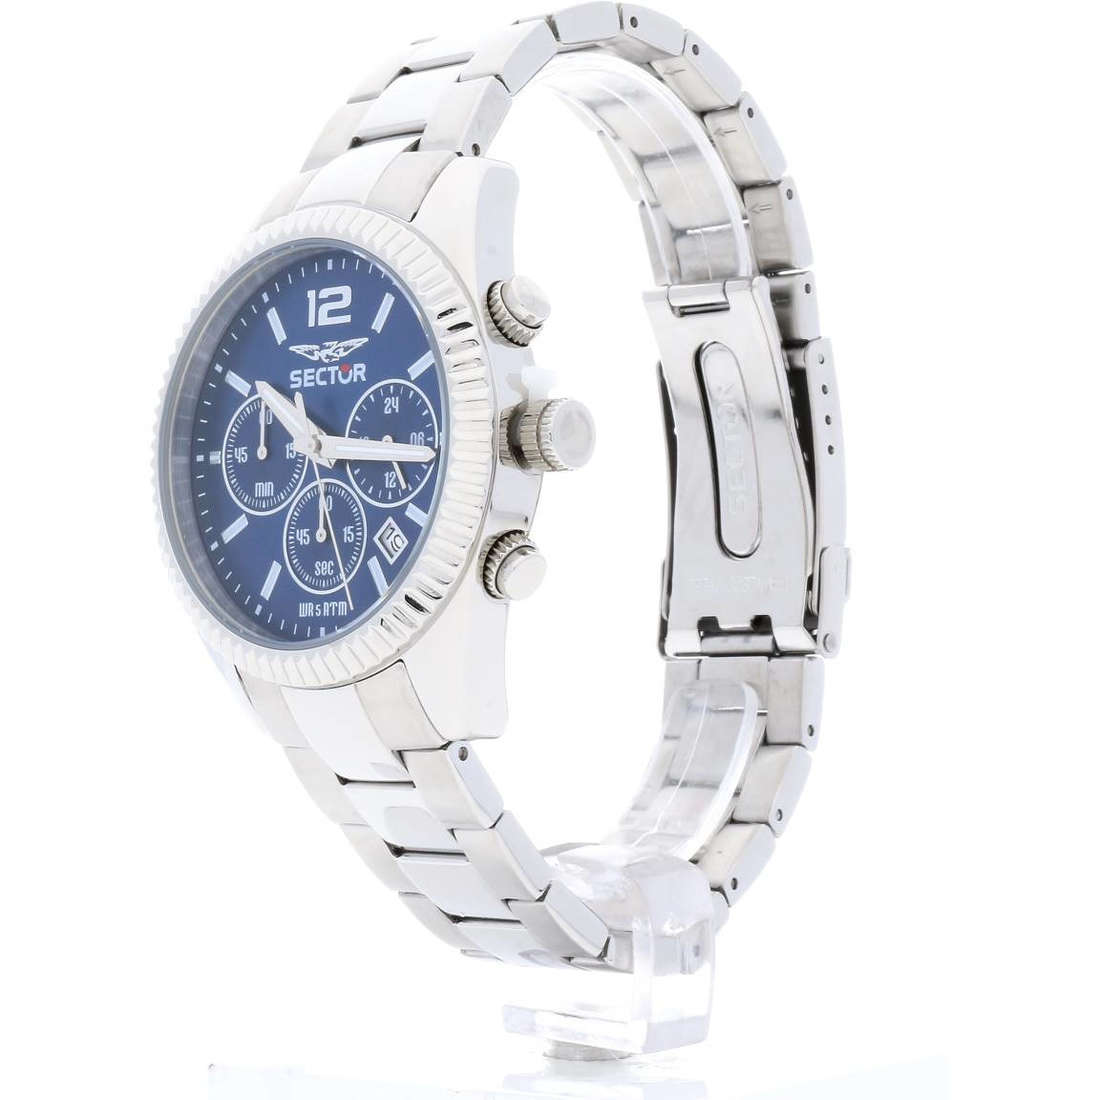 vente montres homme Sector R3273676004